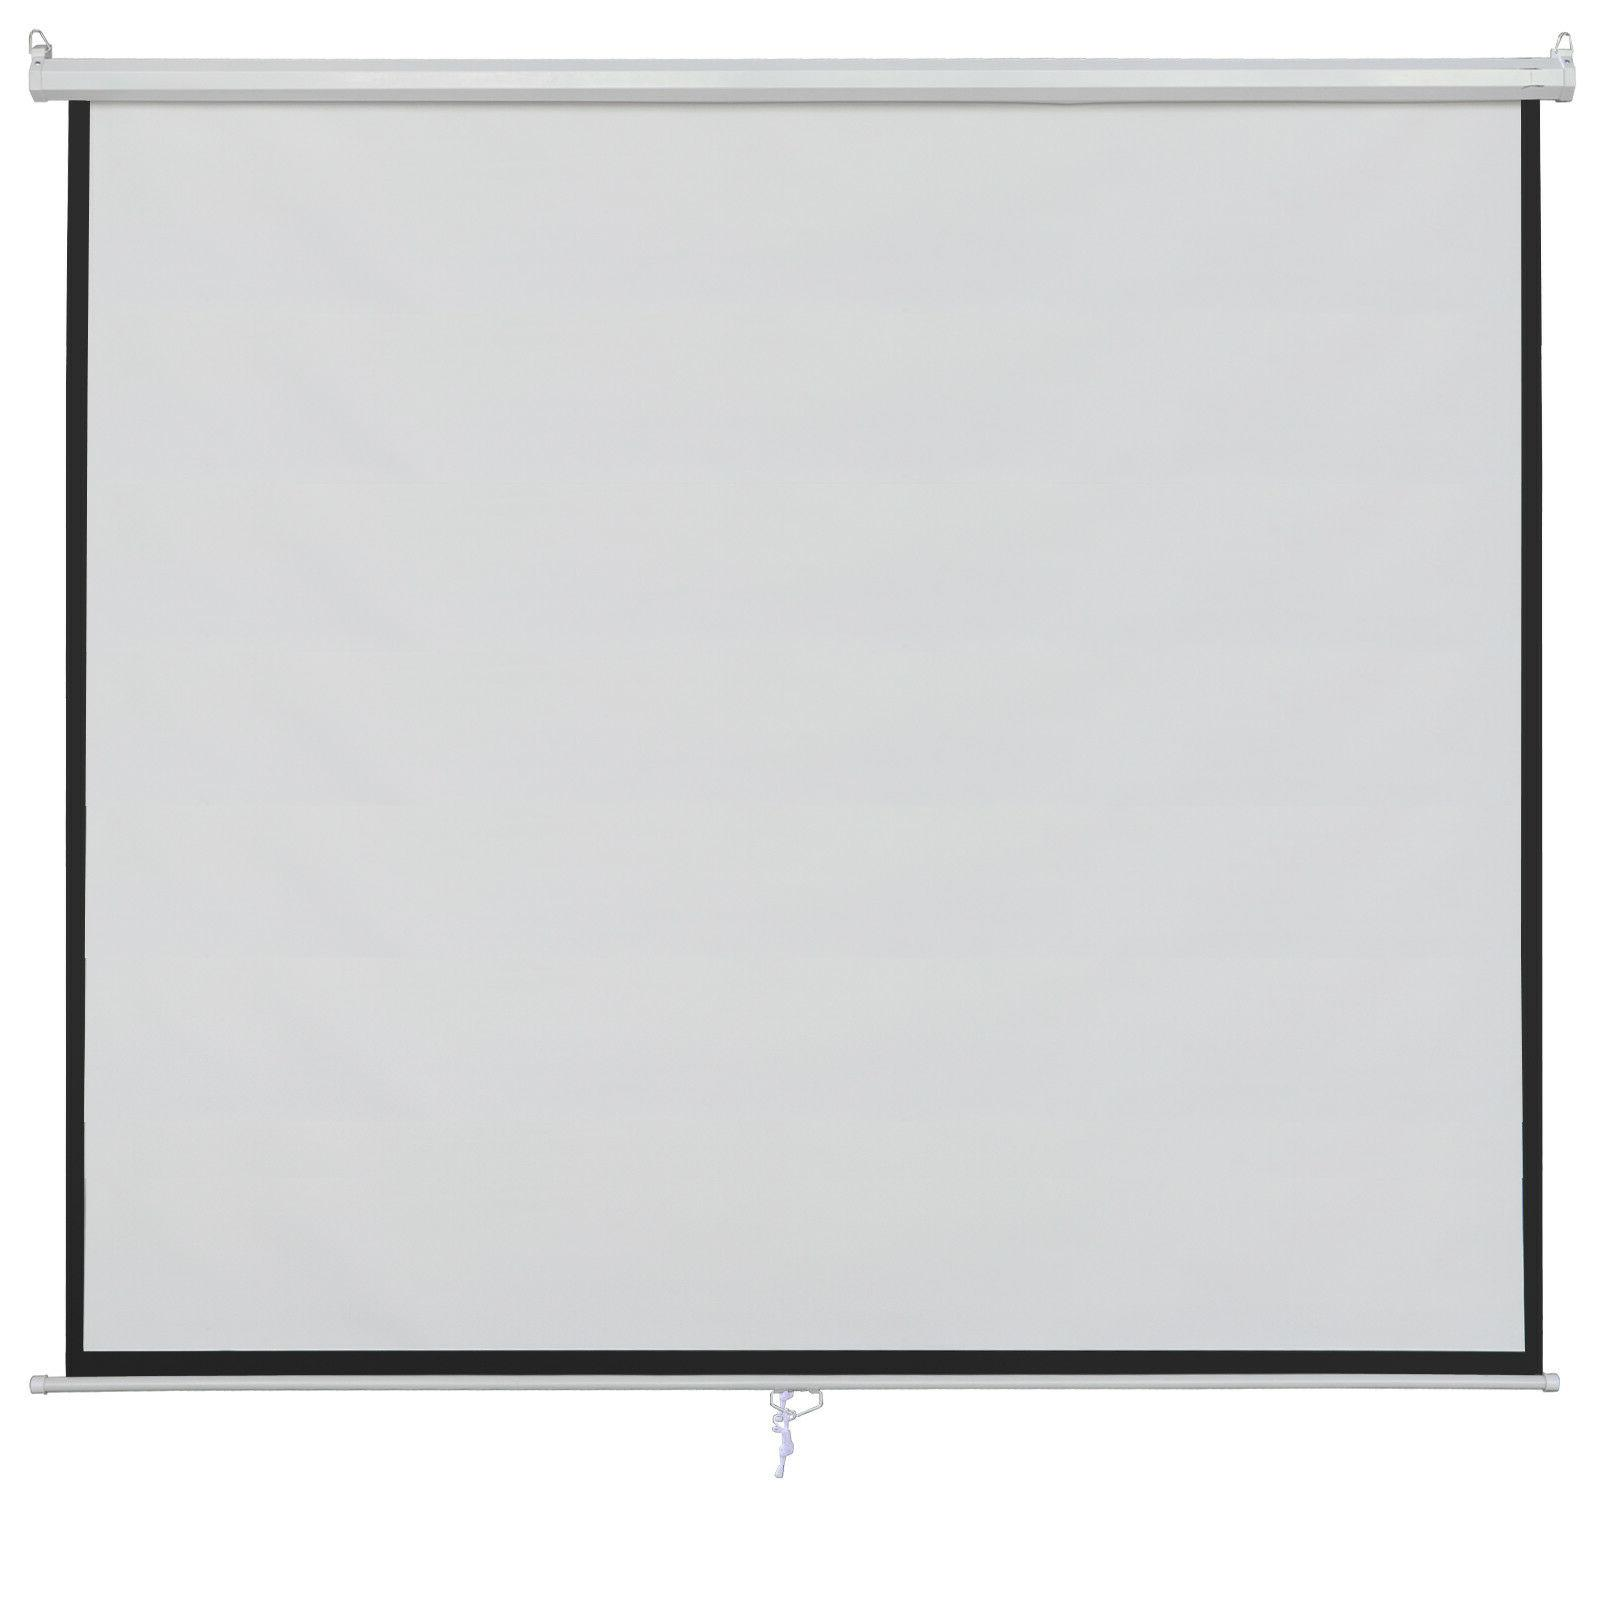 Manual Down 100 Inch 16:9 Projector Screen Theater